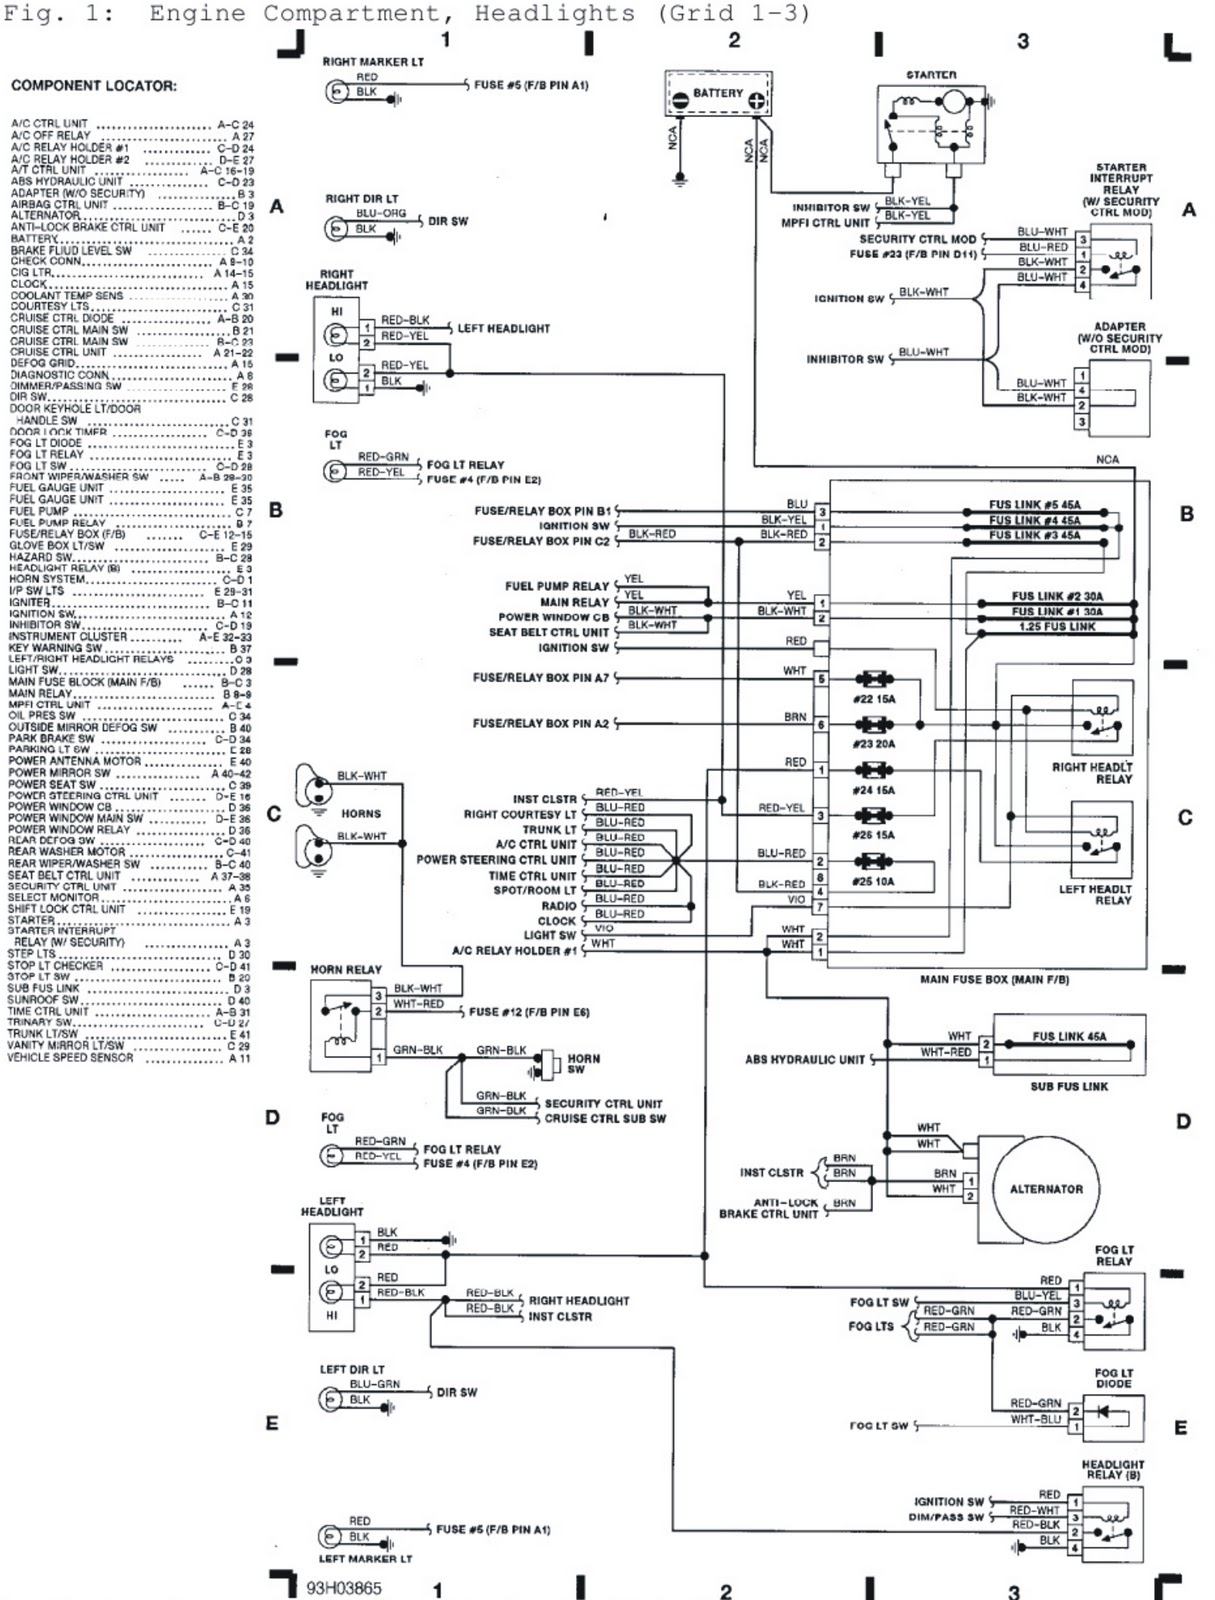 2006 subaru impreza wiring diagram rb25 s13 svx engine free image for